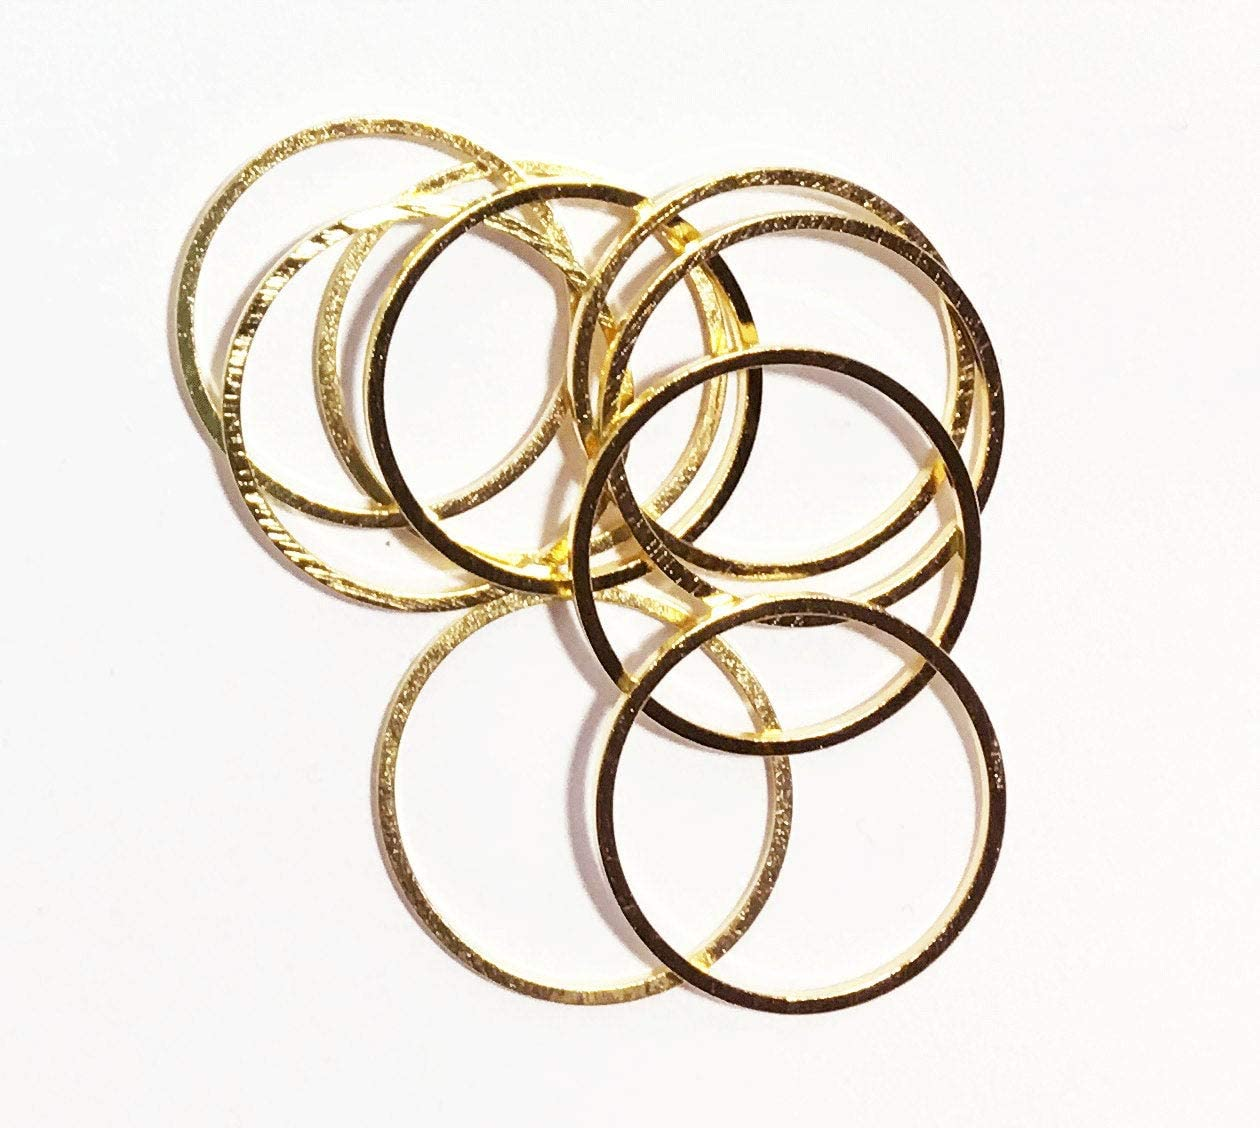 1mm thick 10 pcs  Antiqued copper plated brass round connector rings 20mm